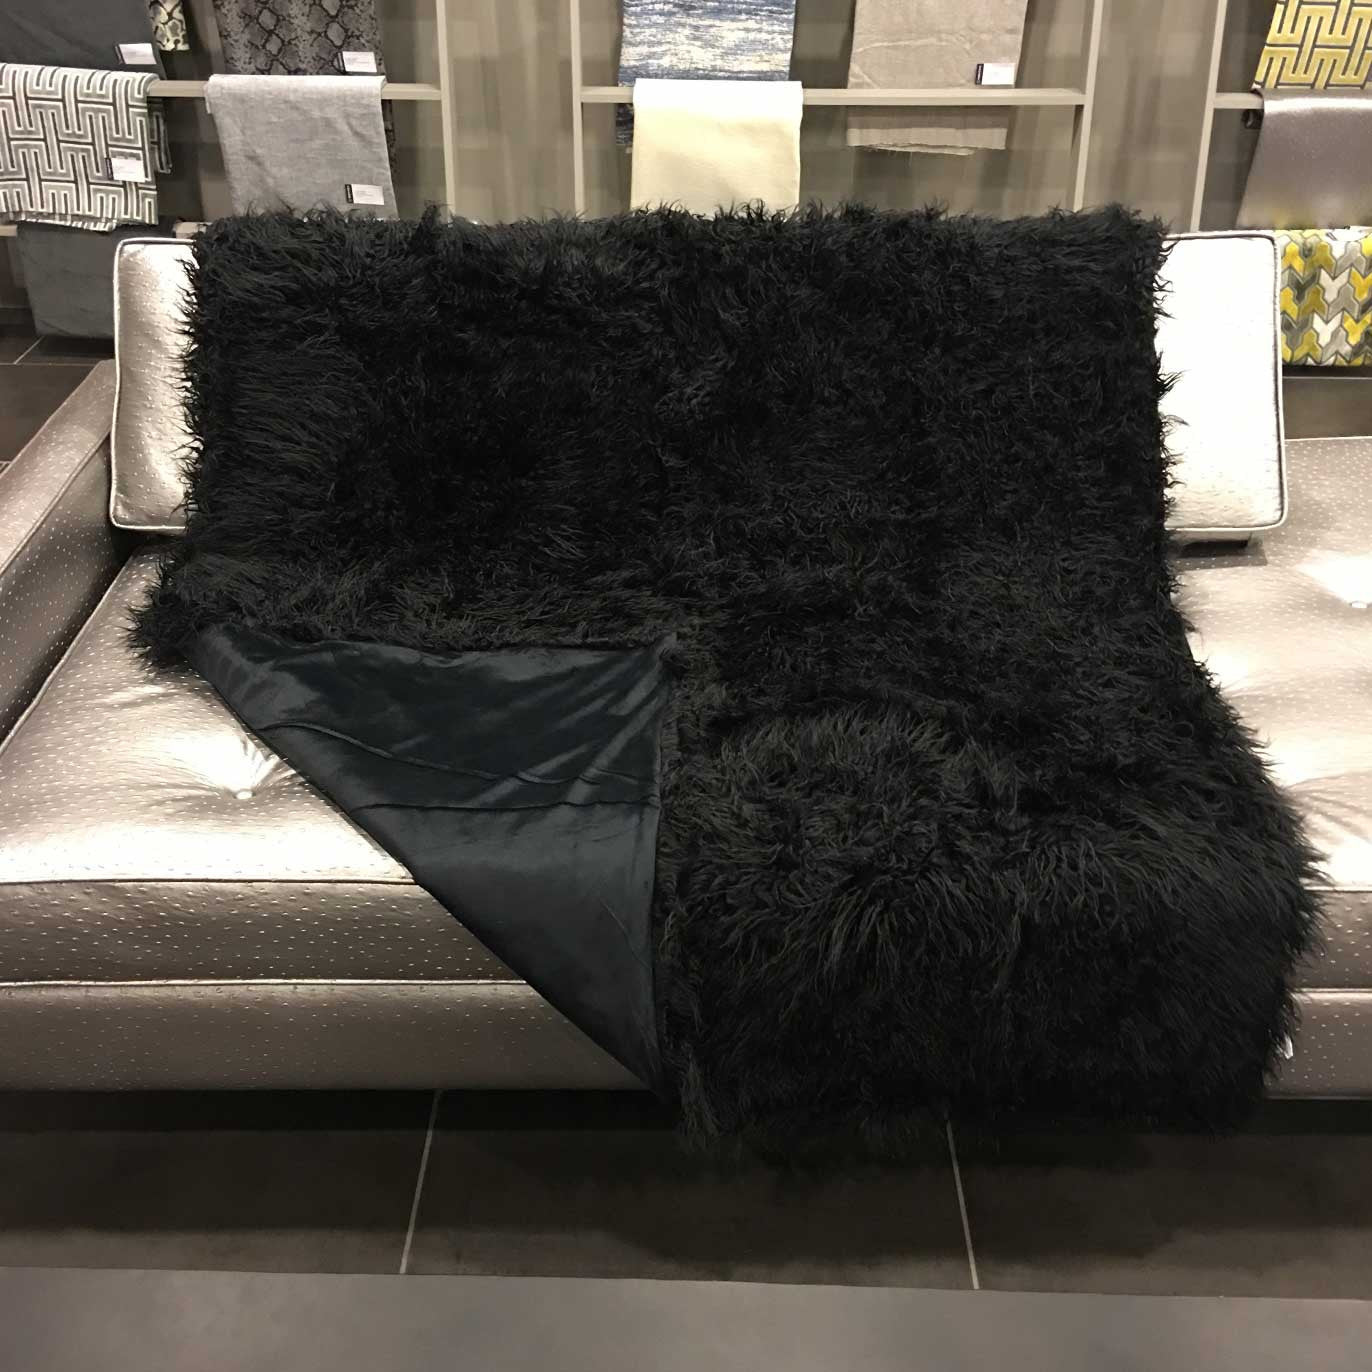 Gigi - Luxurious Shaggy Faux Fur Throw Blanket - 18 Colors